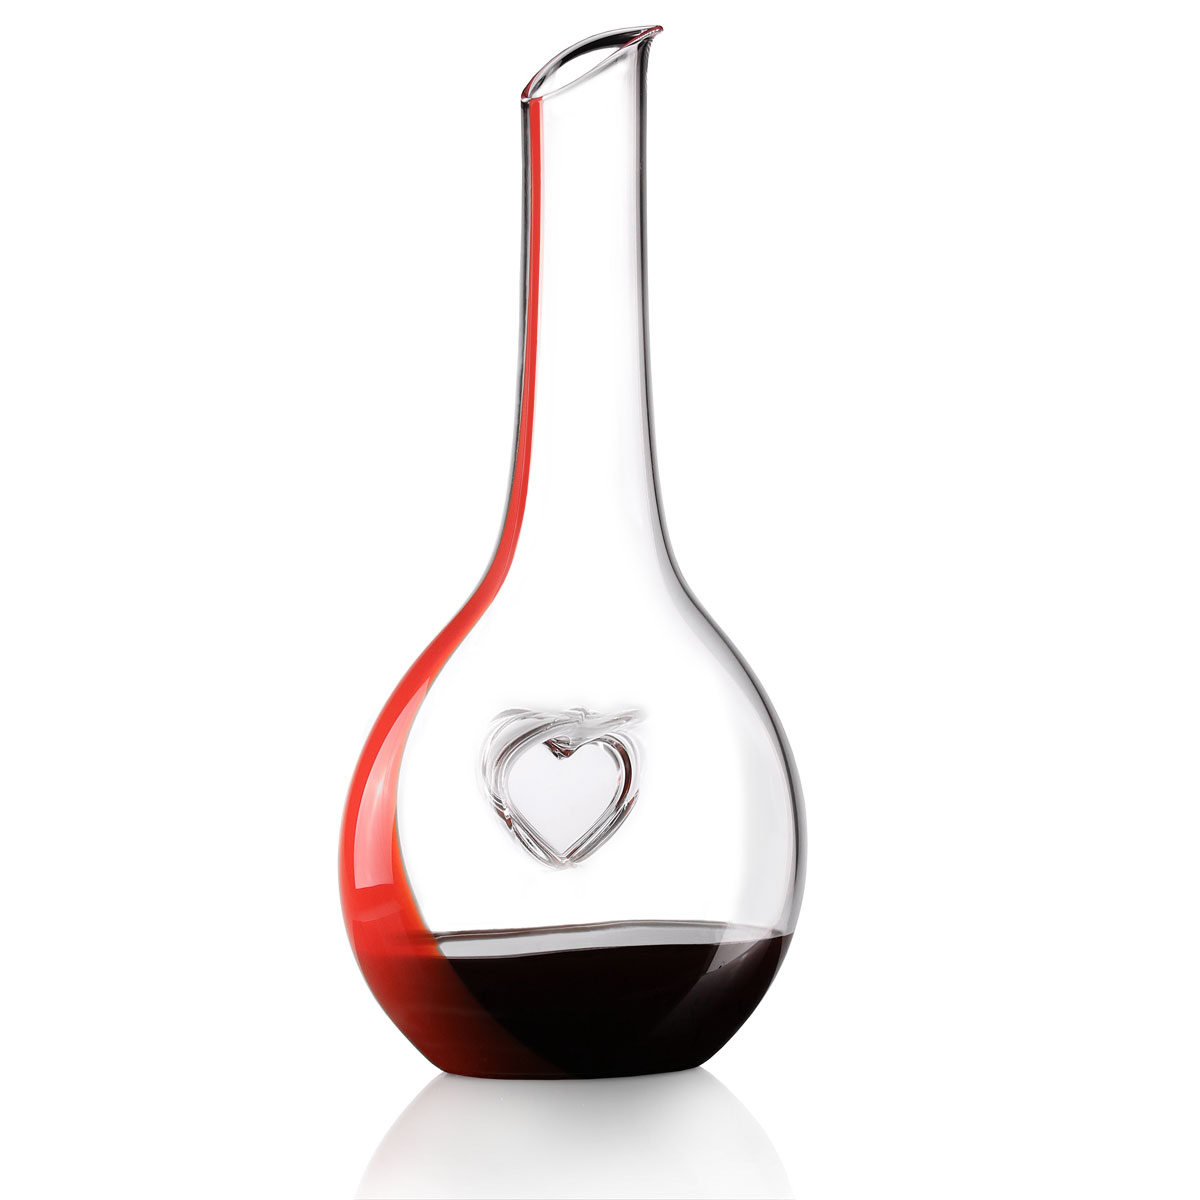 Riedel Fatto A Mano, Lipstick Red Bliss Wine Decanter, Limited Edition